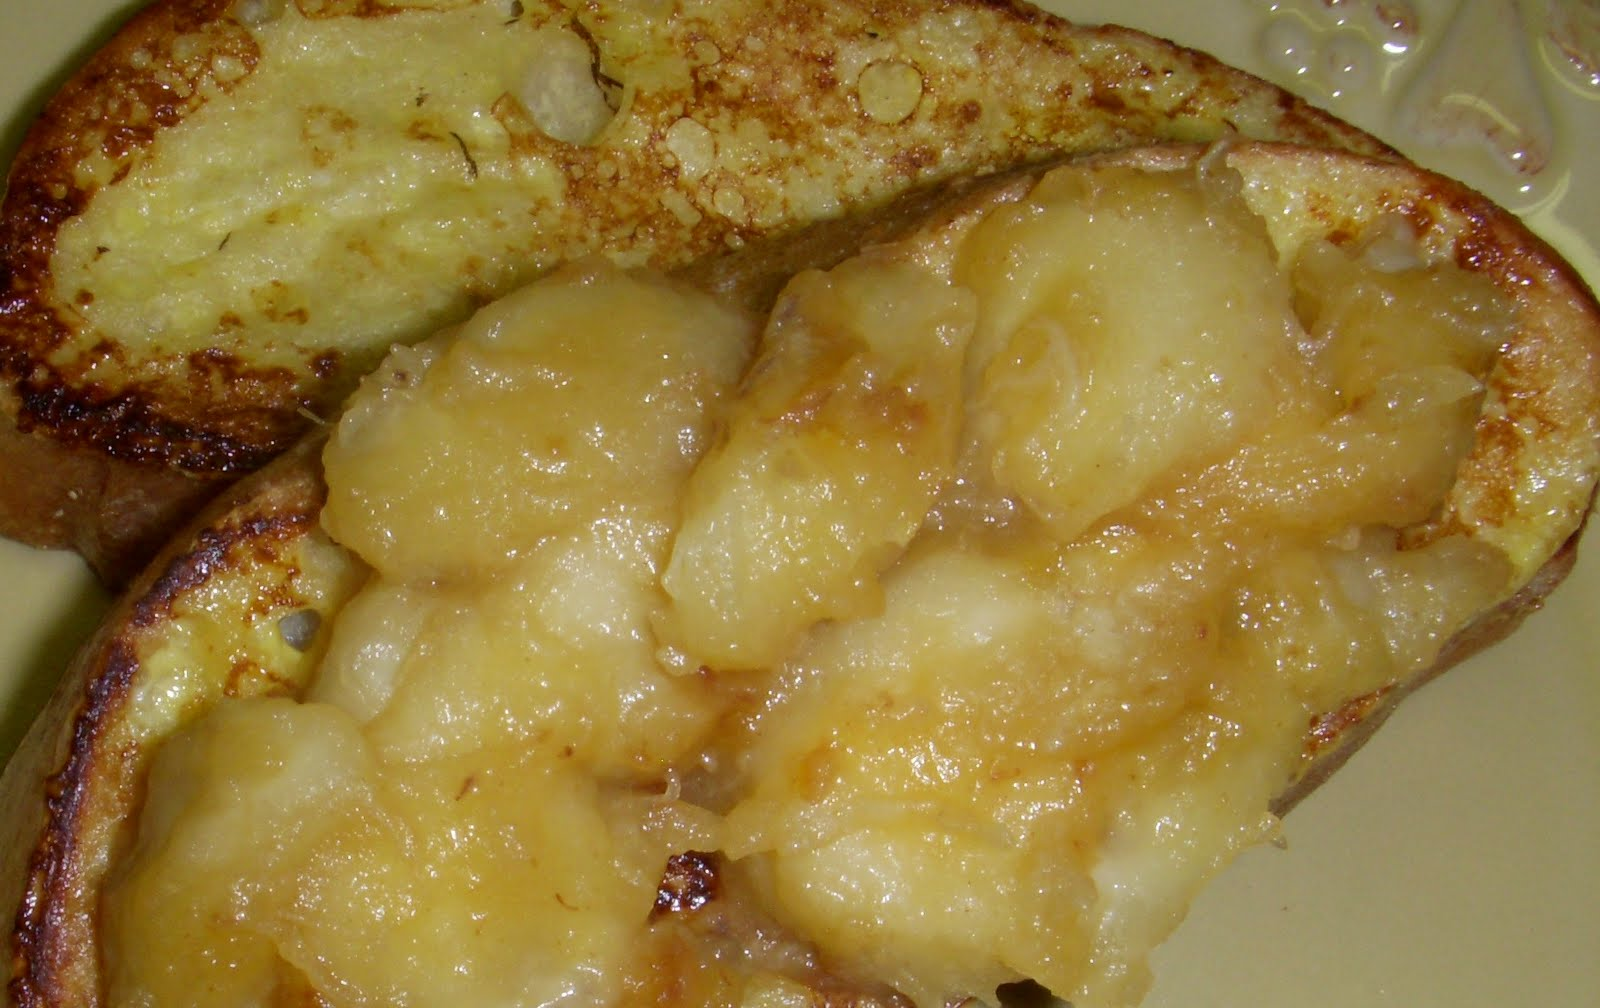 French Toast with Caramelized Bananas – Dallas Duo Bakes